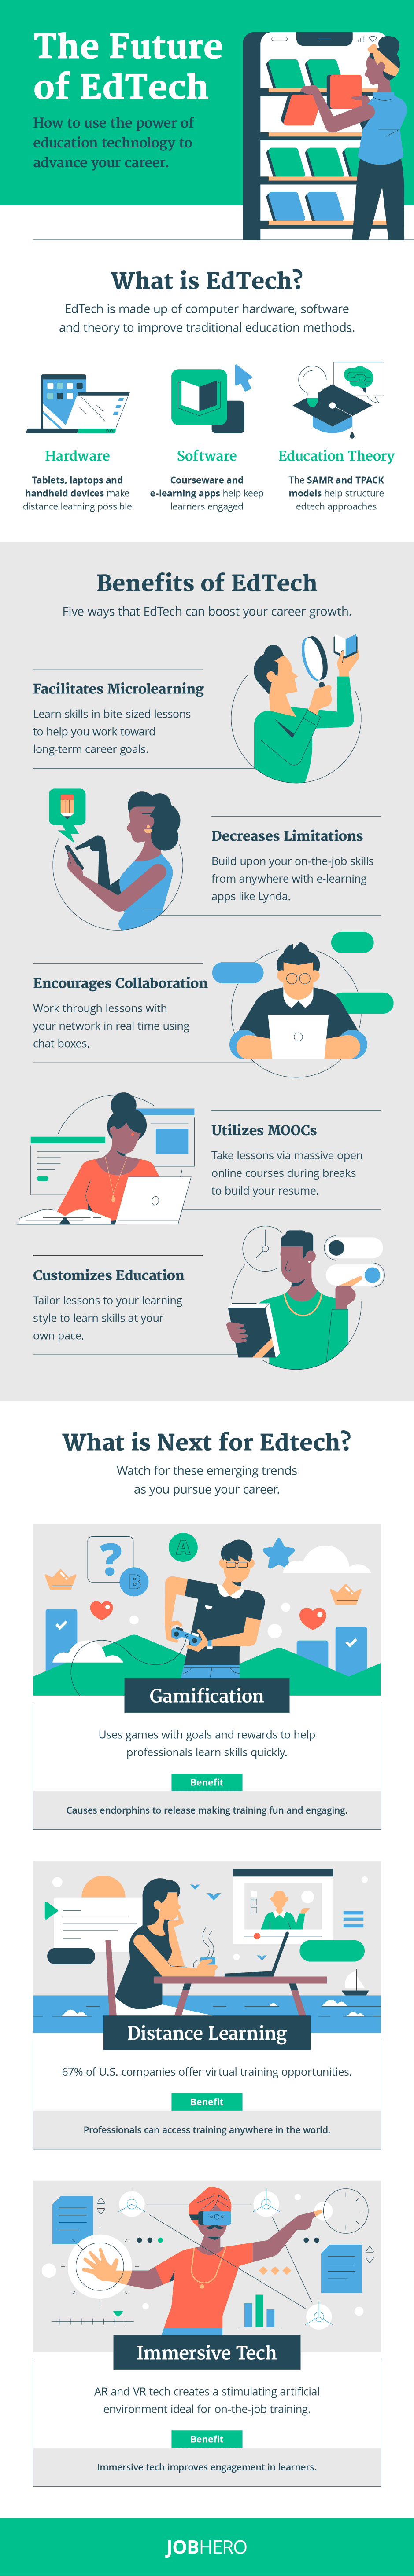 Additional Edtech Resources